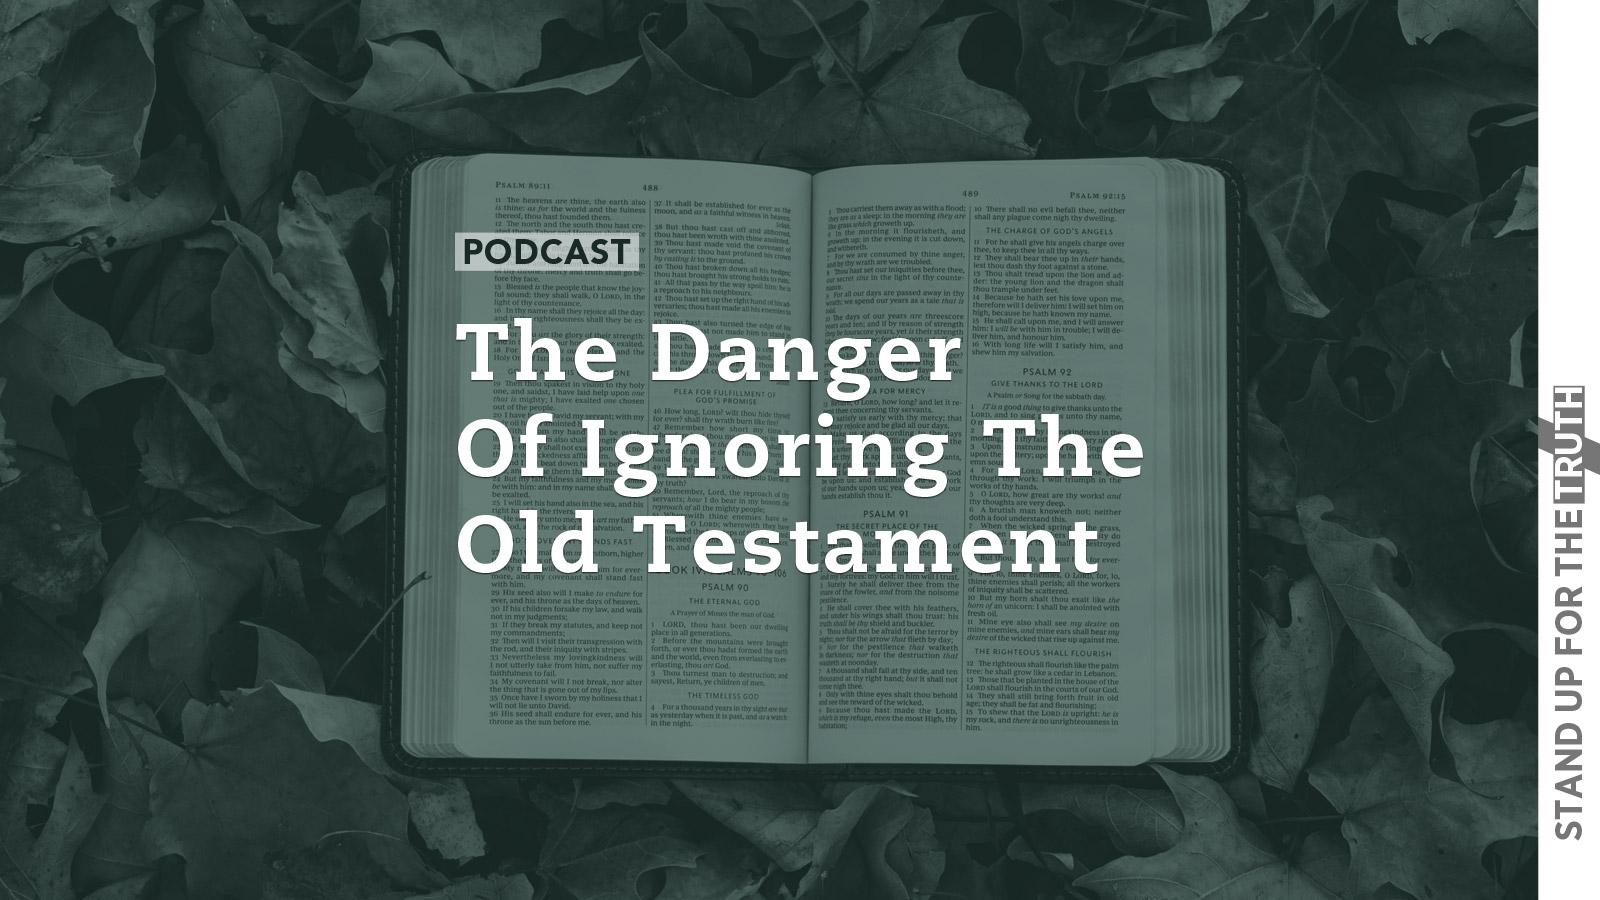 truthfulness of the old testament The historicity of the bible is the question of the bible's acceptability as a history, in the words of thomas l thompson, a scholar who has written widely on this topic as it relates to the old testament this can be extended to the question of the christian new testament as an accurate record of the historical jesus and the.